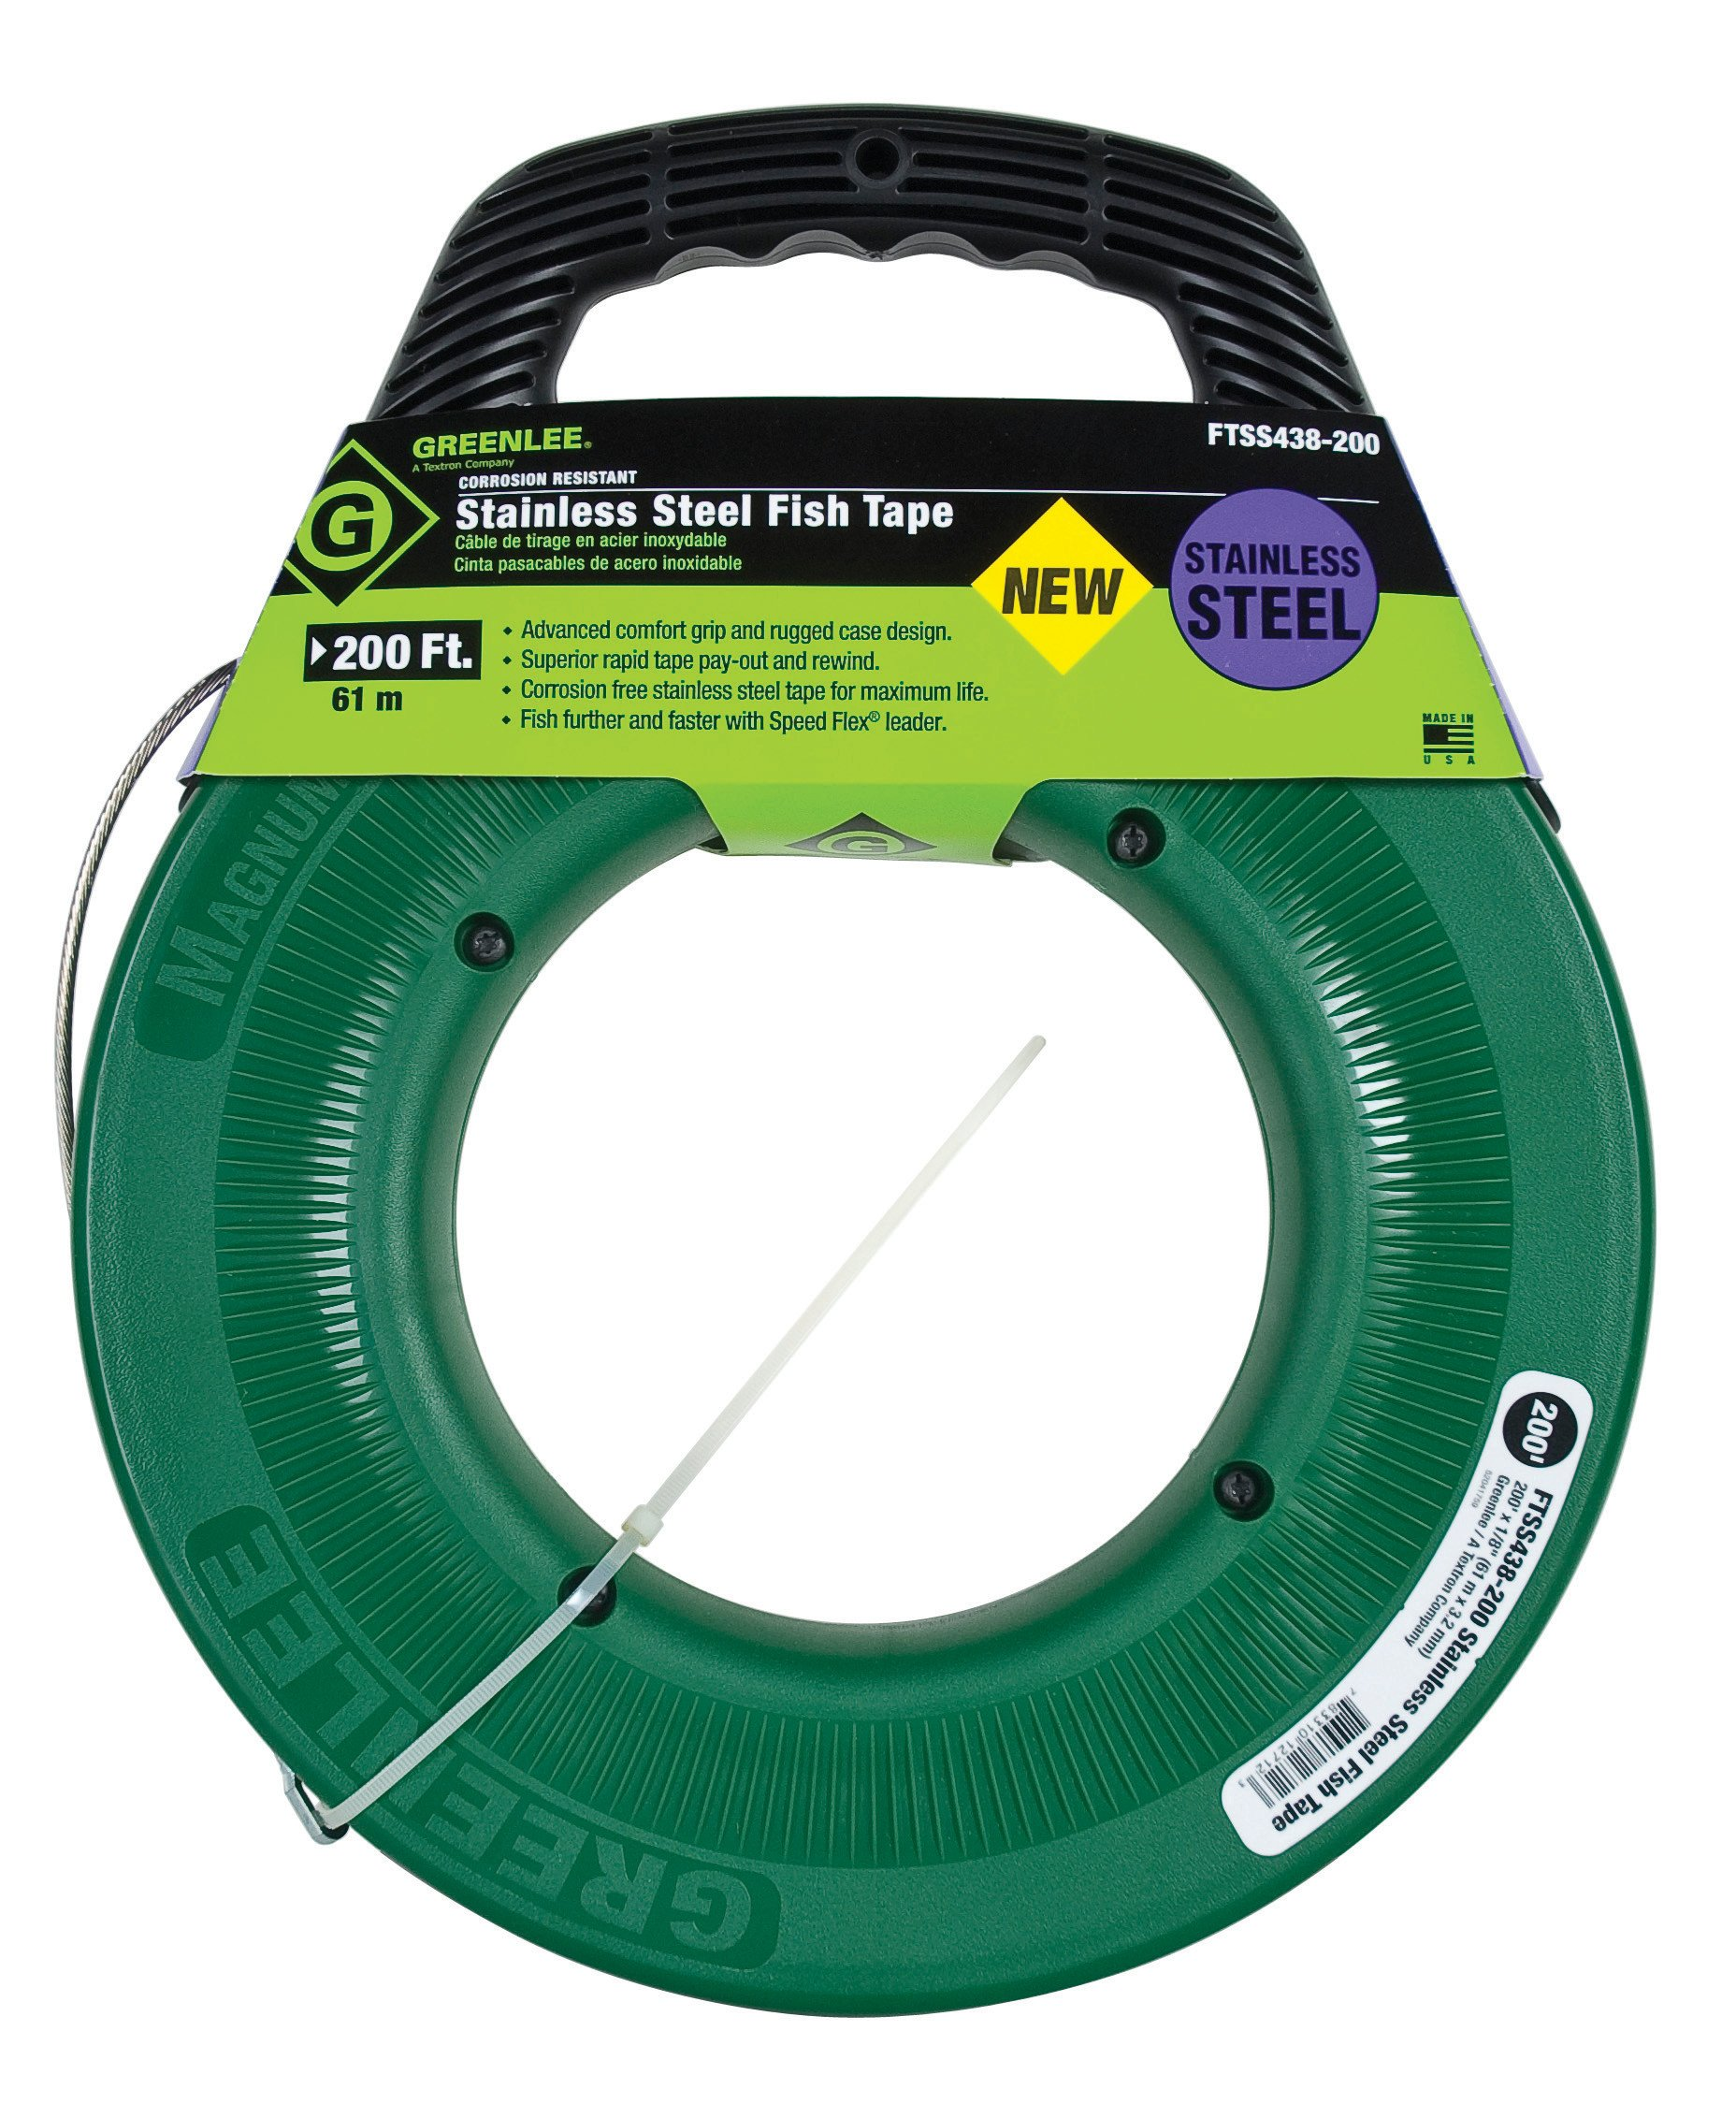 Greenlee FTSS438-200 Stainless Steel Fish Tape, 200-Feet x 1/8-Inch